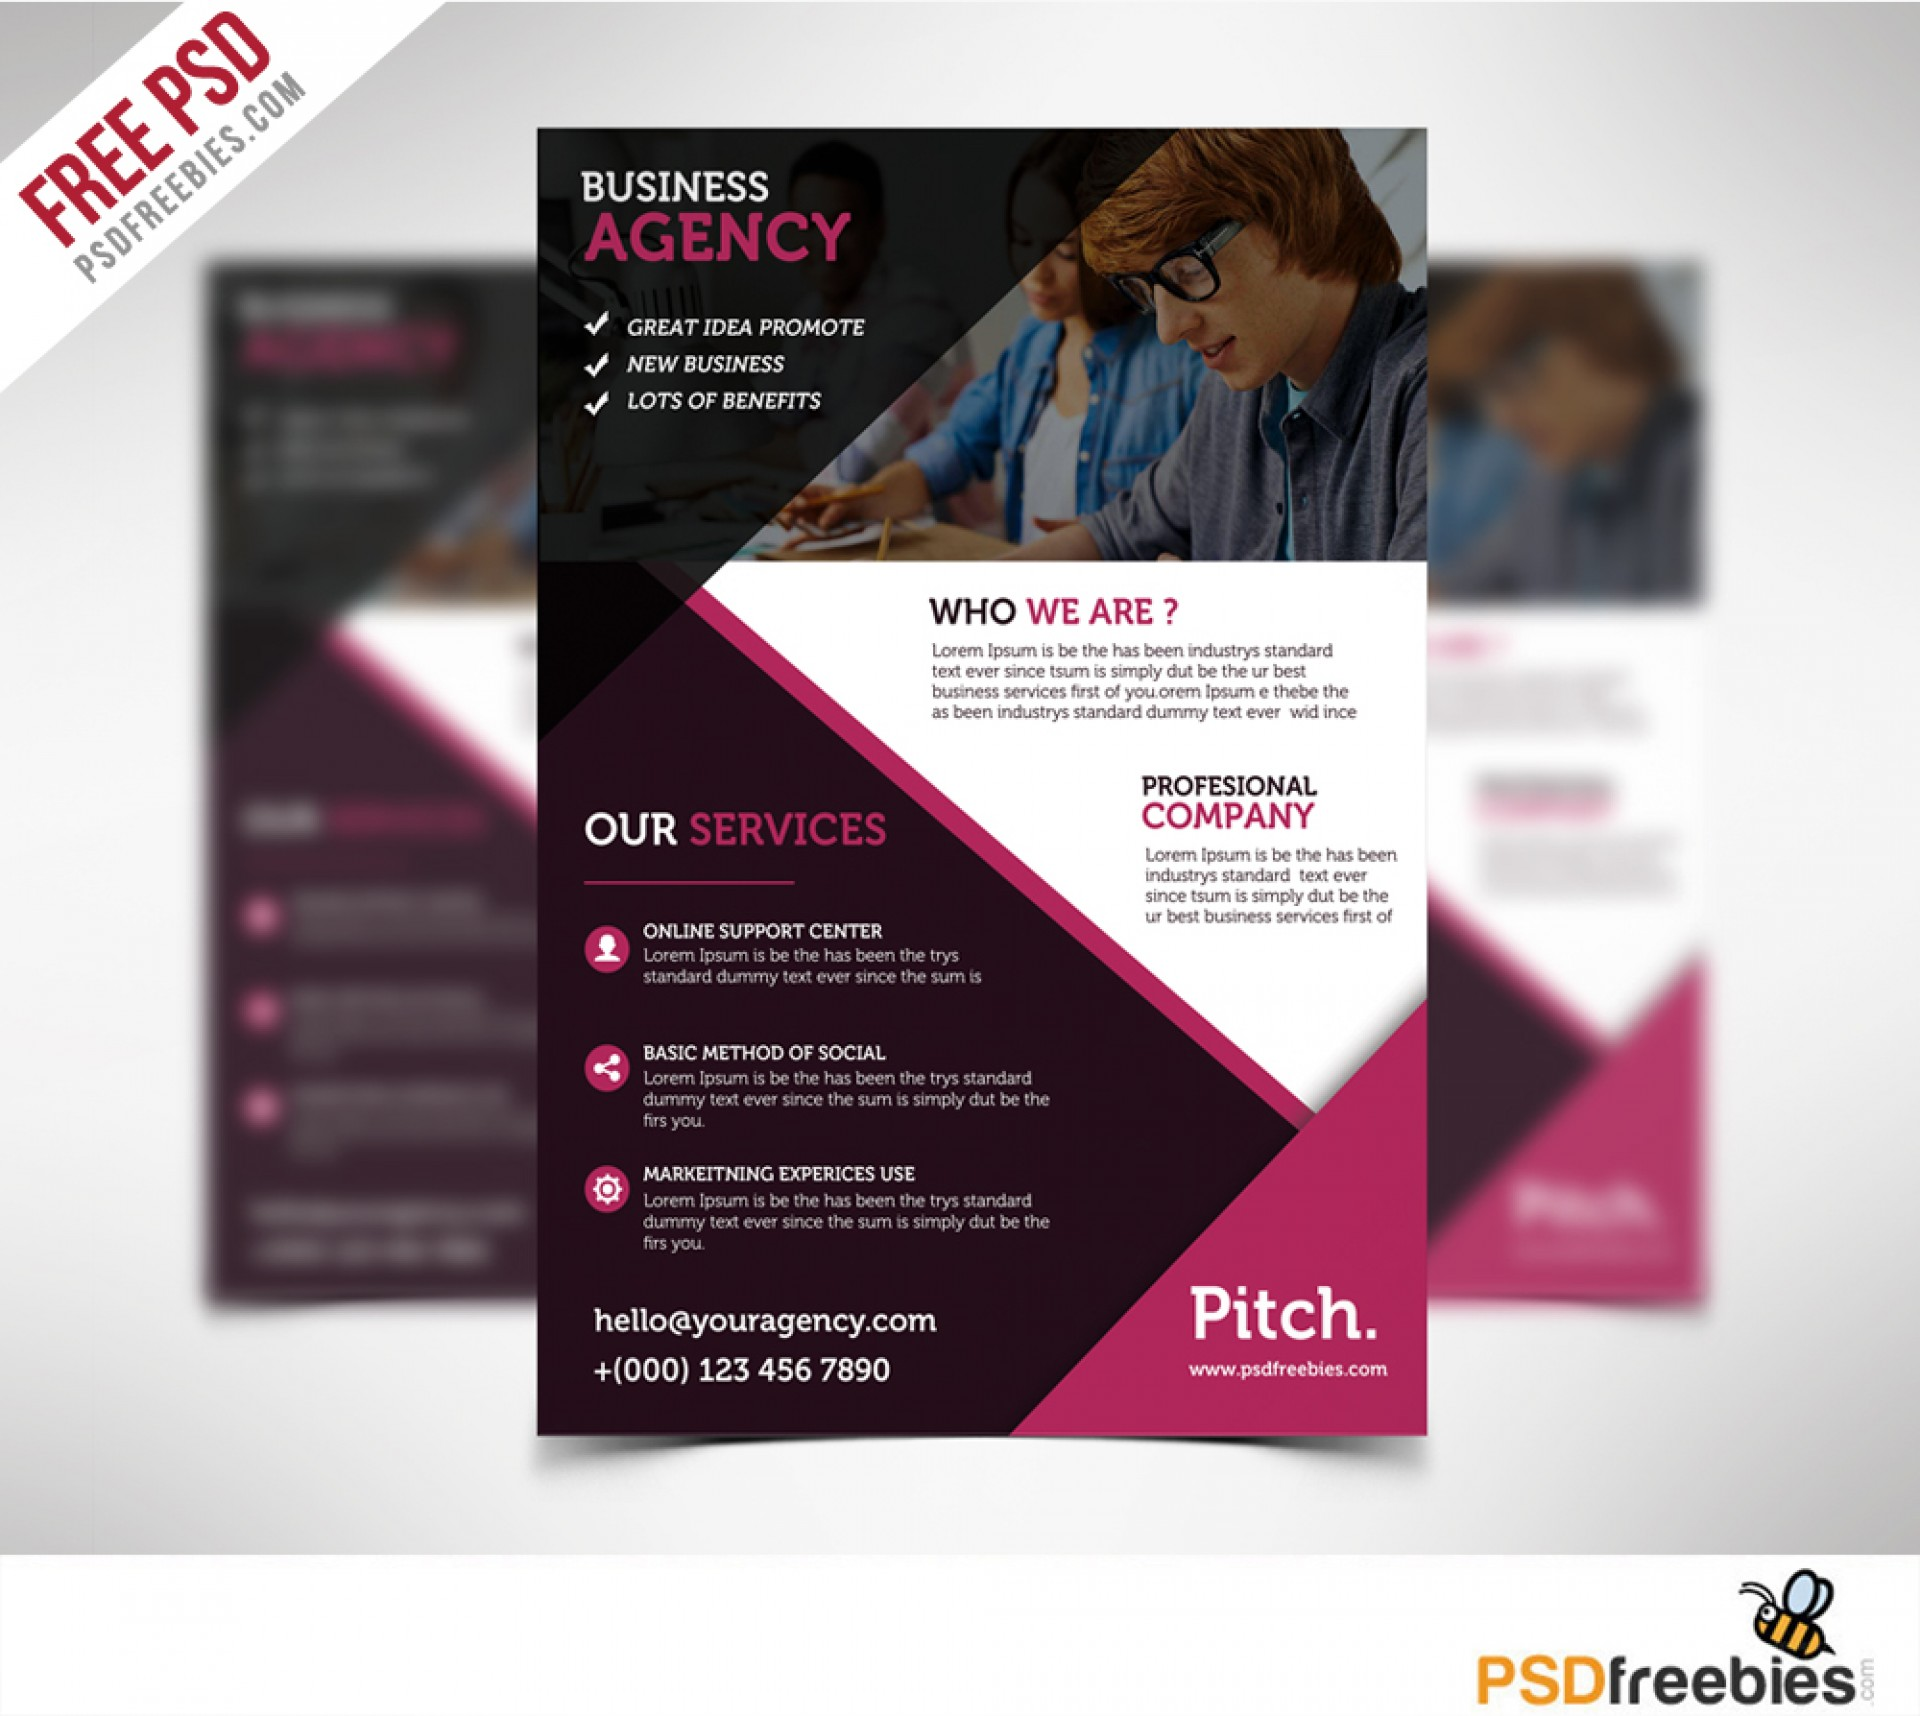 006 Amazing Free Download Flyer Template Photo  Templates Blank Leaflet Word Psd1920